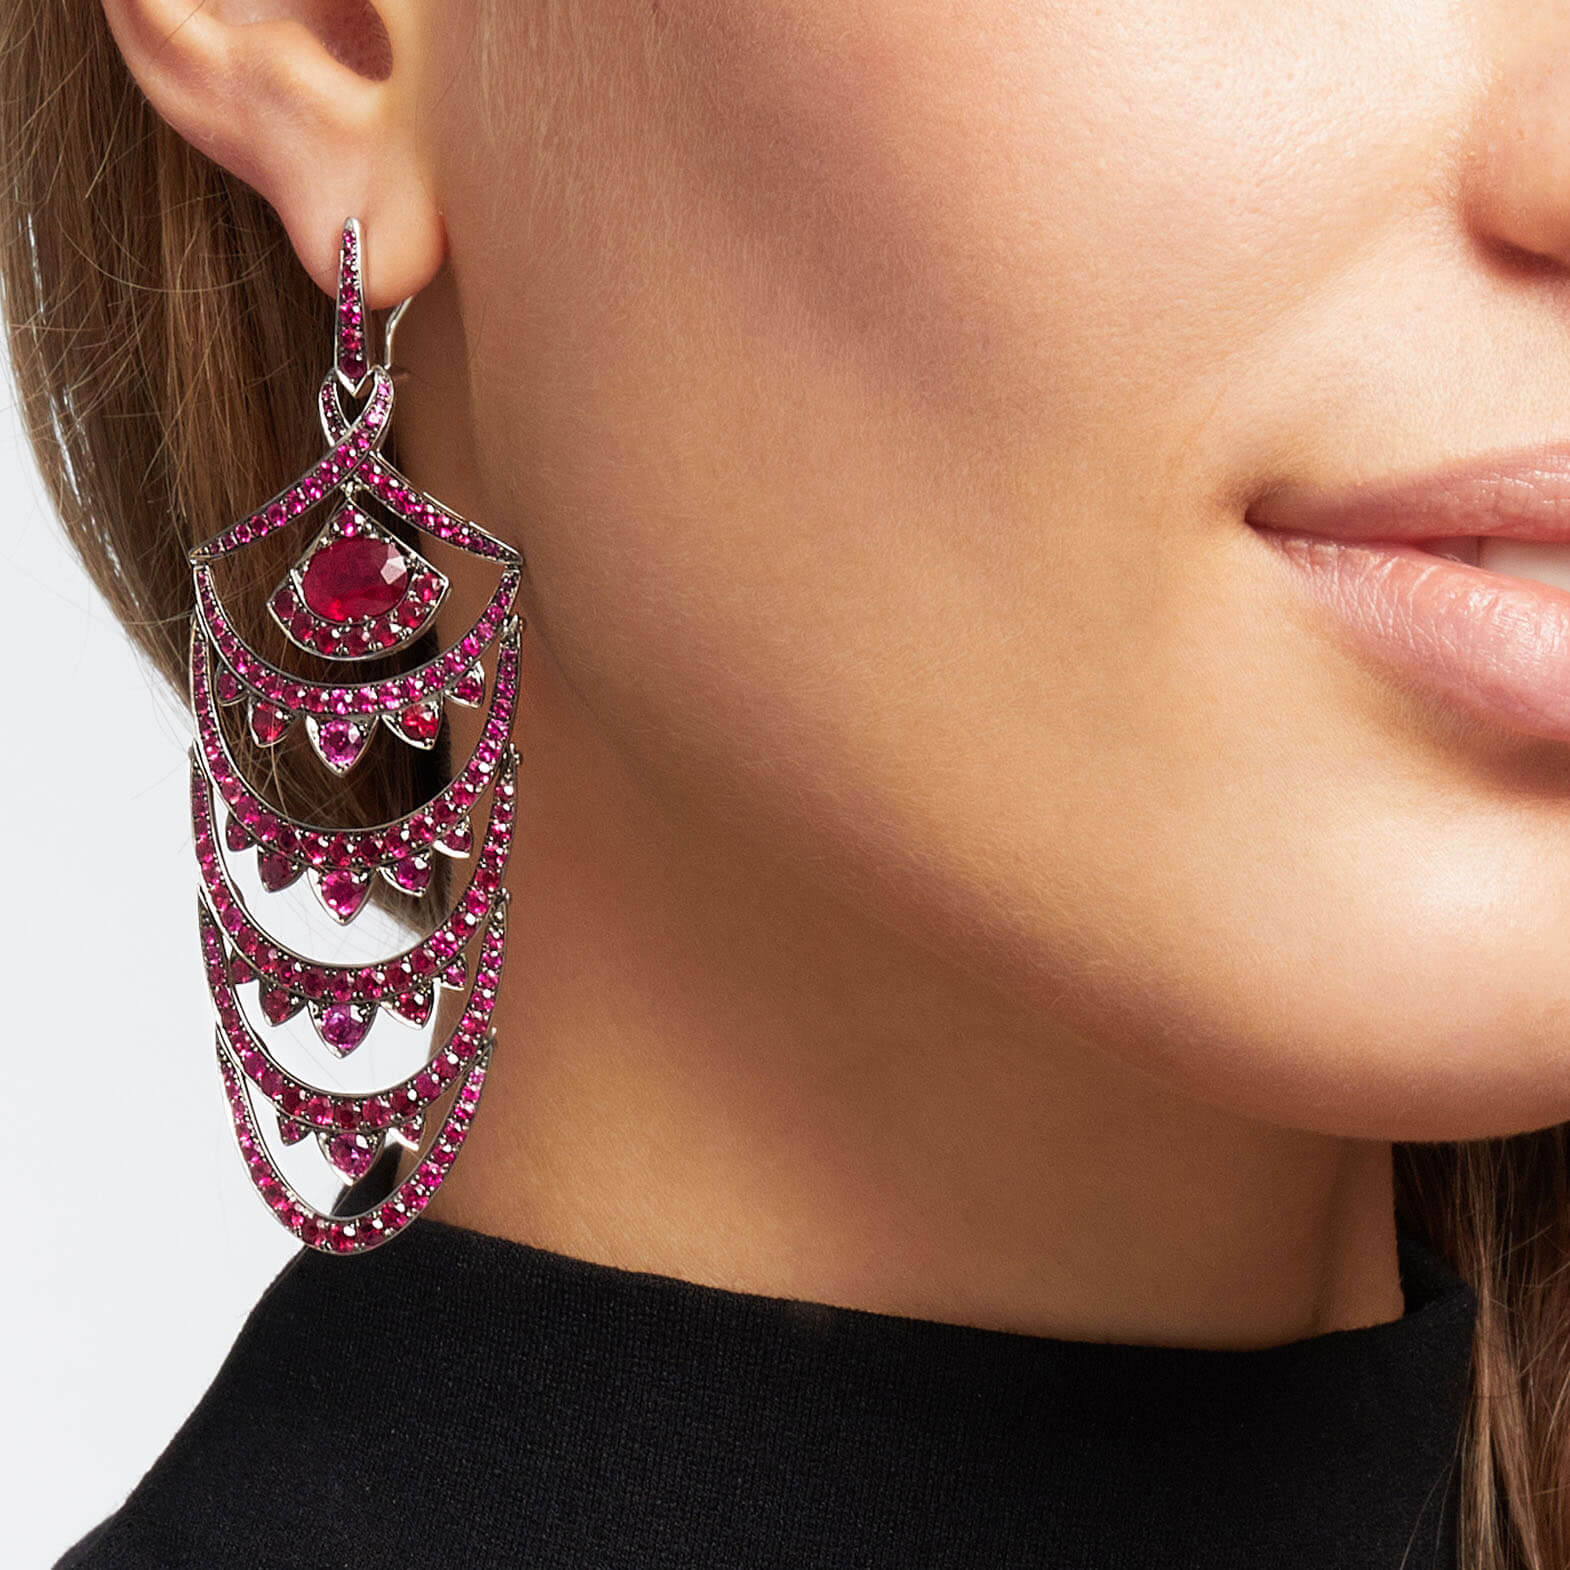 White Gold New York Earrings With Rubies | Deco